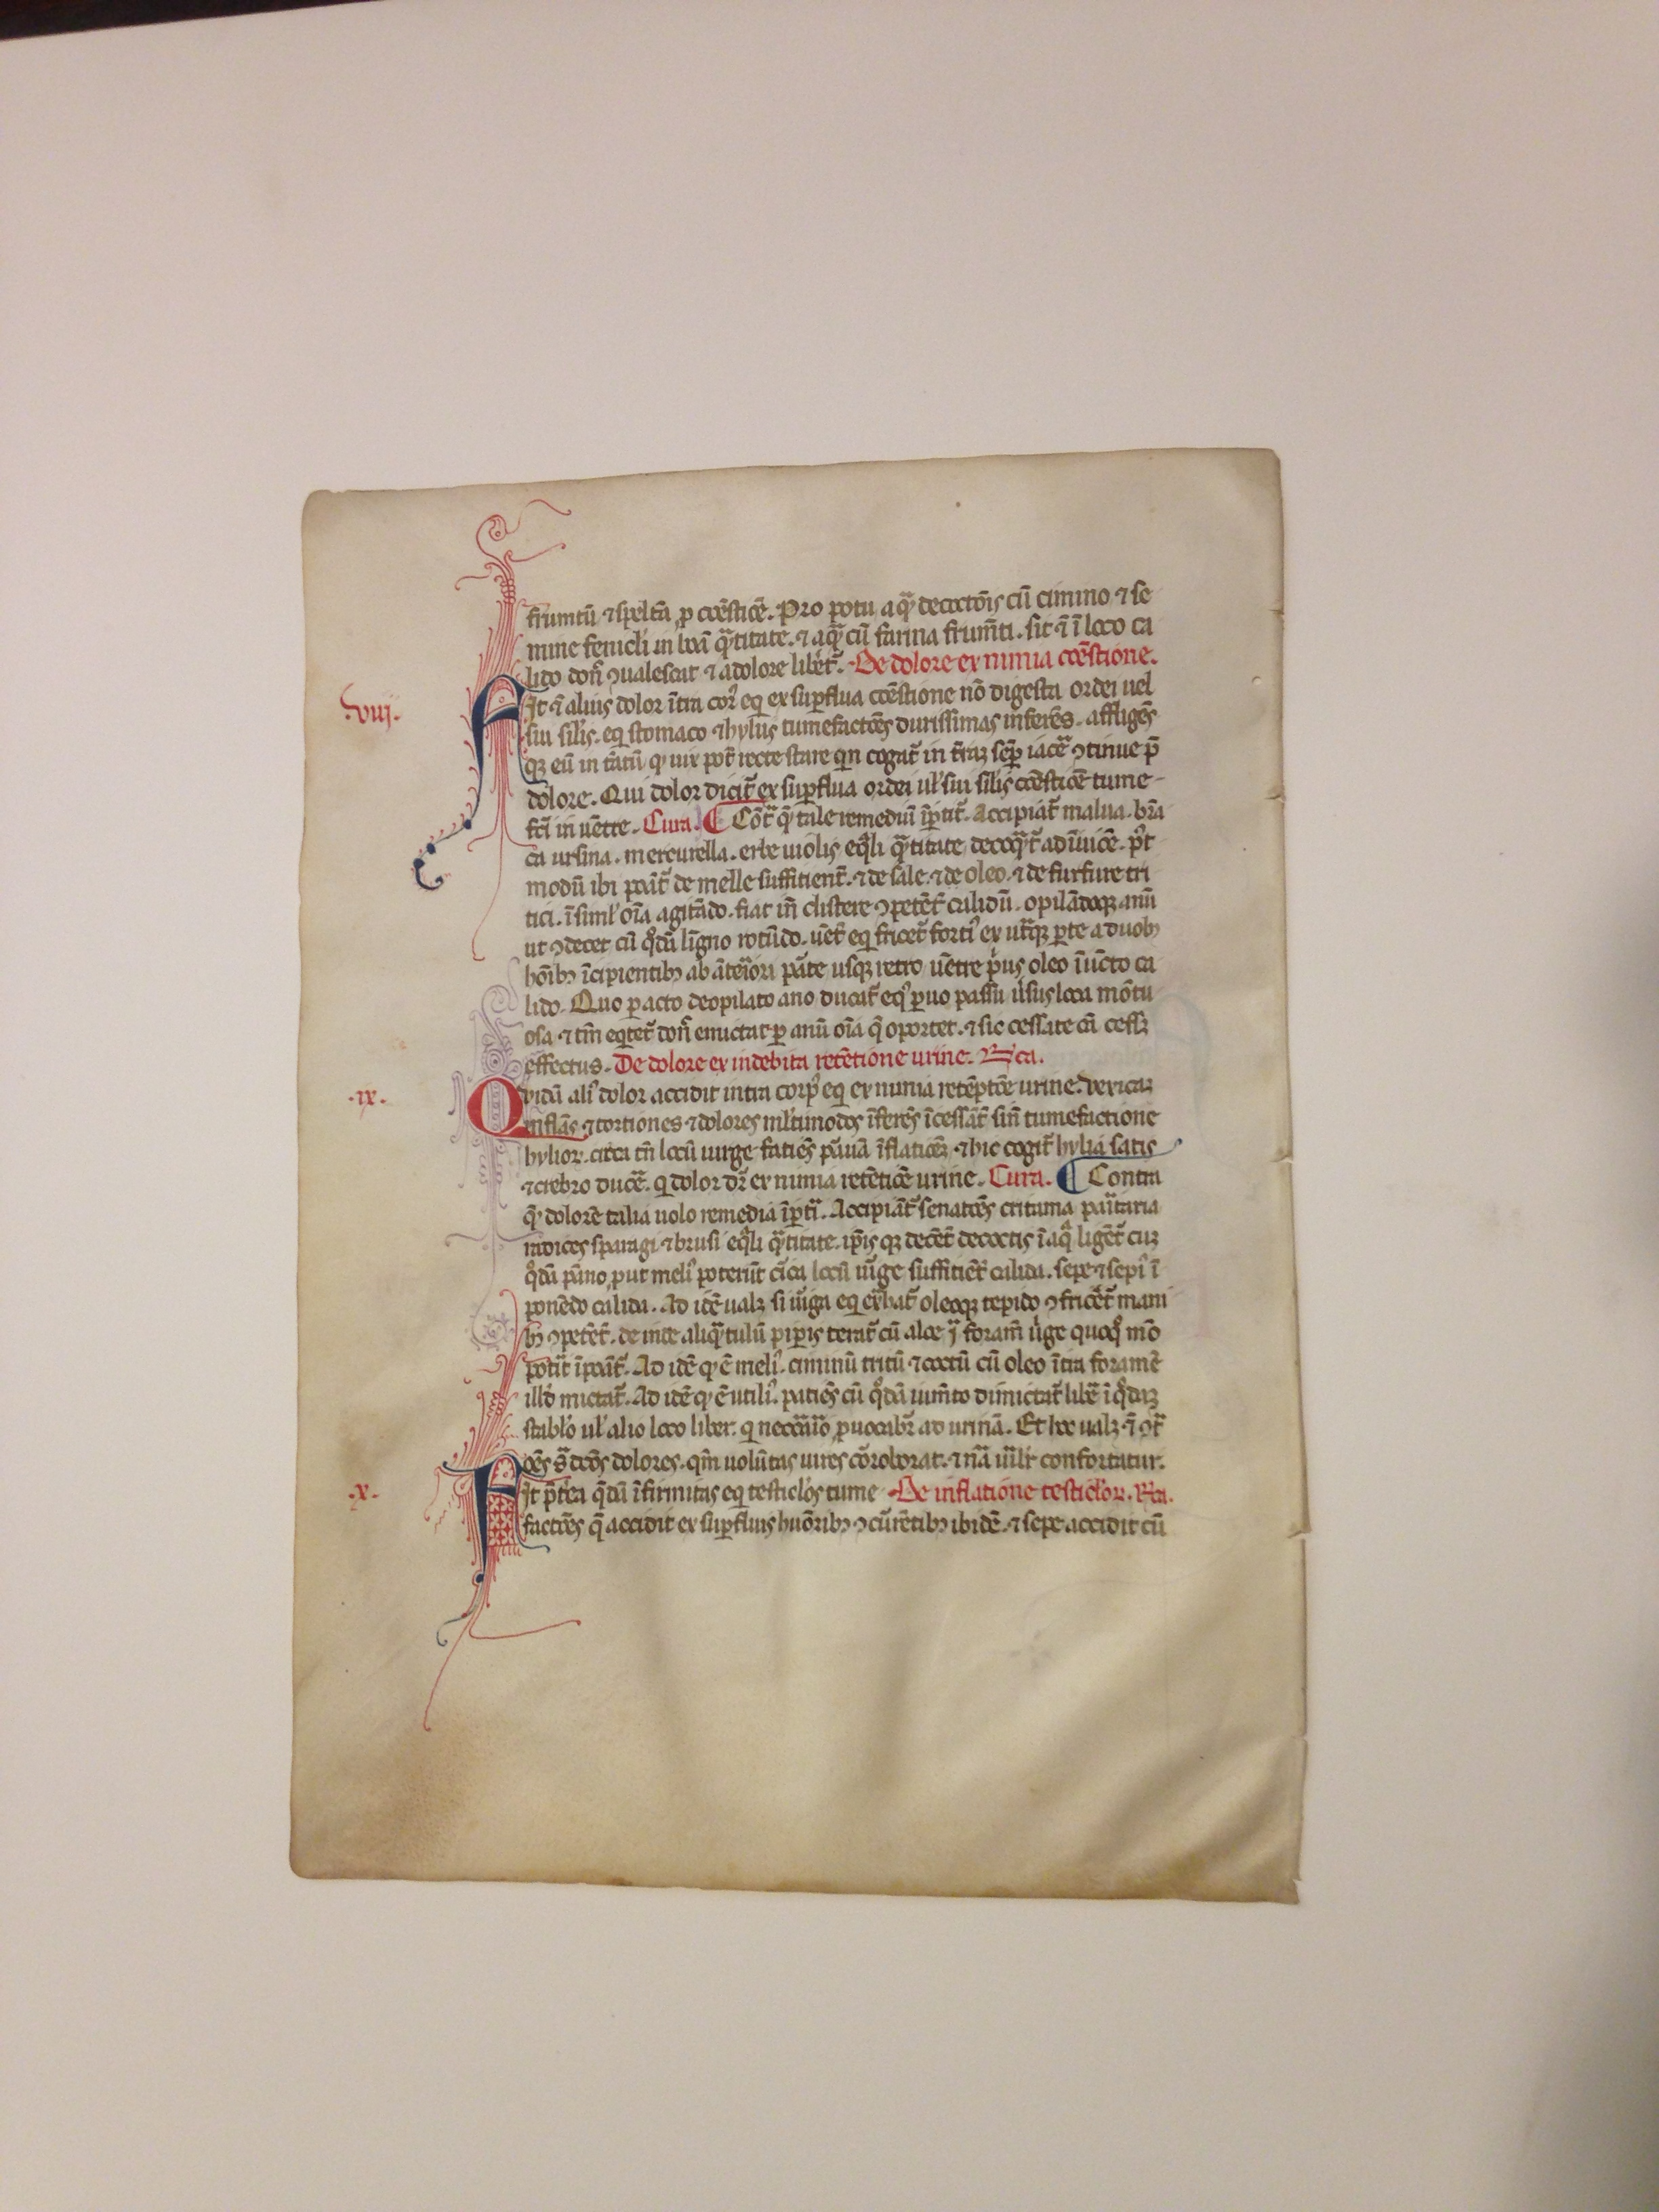 Verso of the manuscript leaf shown above. the chapters concern treatments for certain equine ailments.  (MSS 15703)